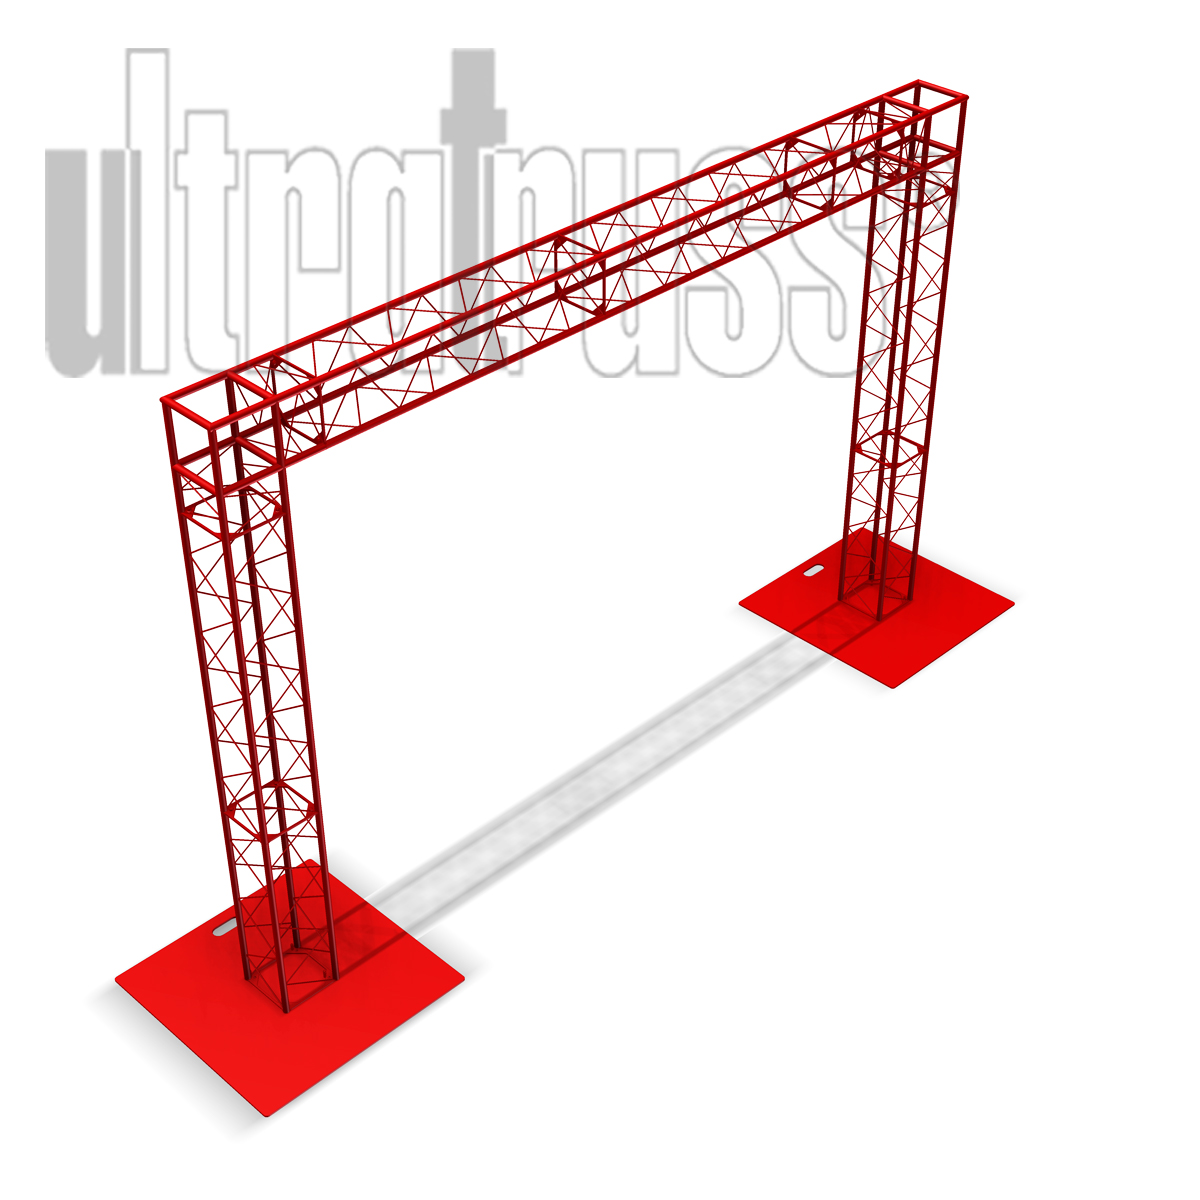 Michelle 12ft x 8ft ultratruss box truss arch Truss cost